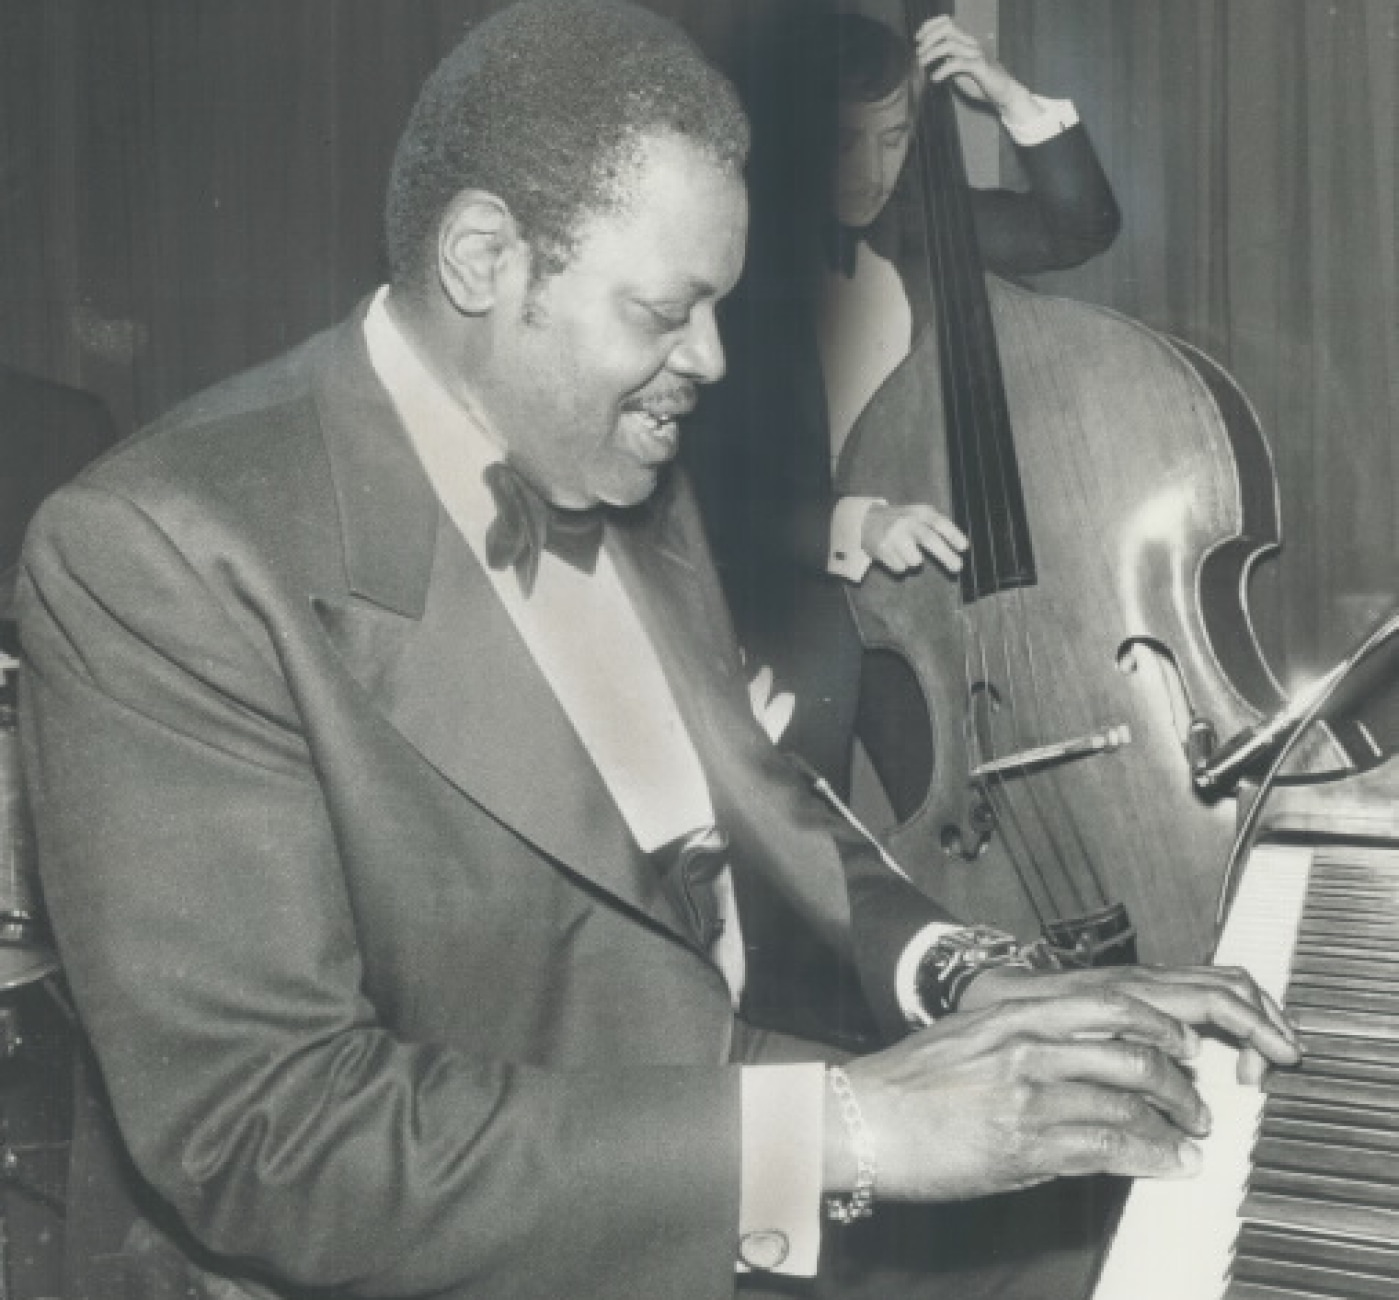 A man in a suit plays the piano. Behind him, a bassist plays.